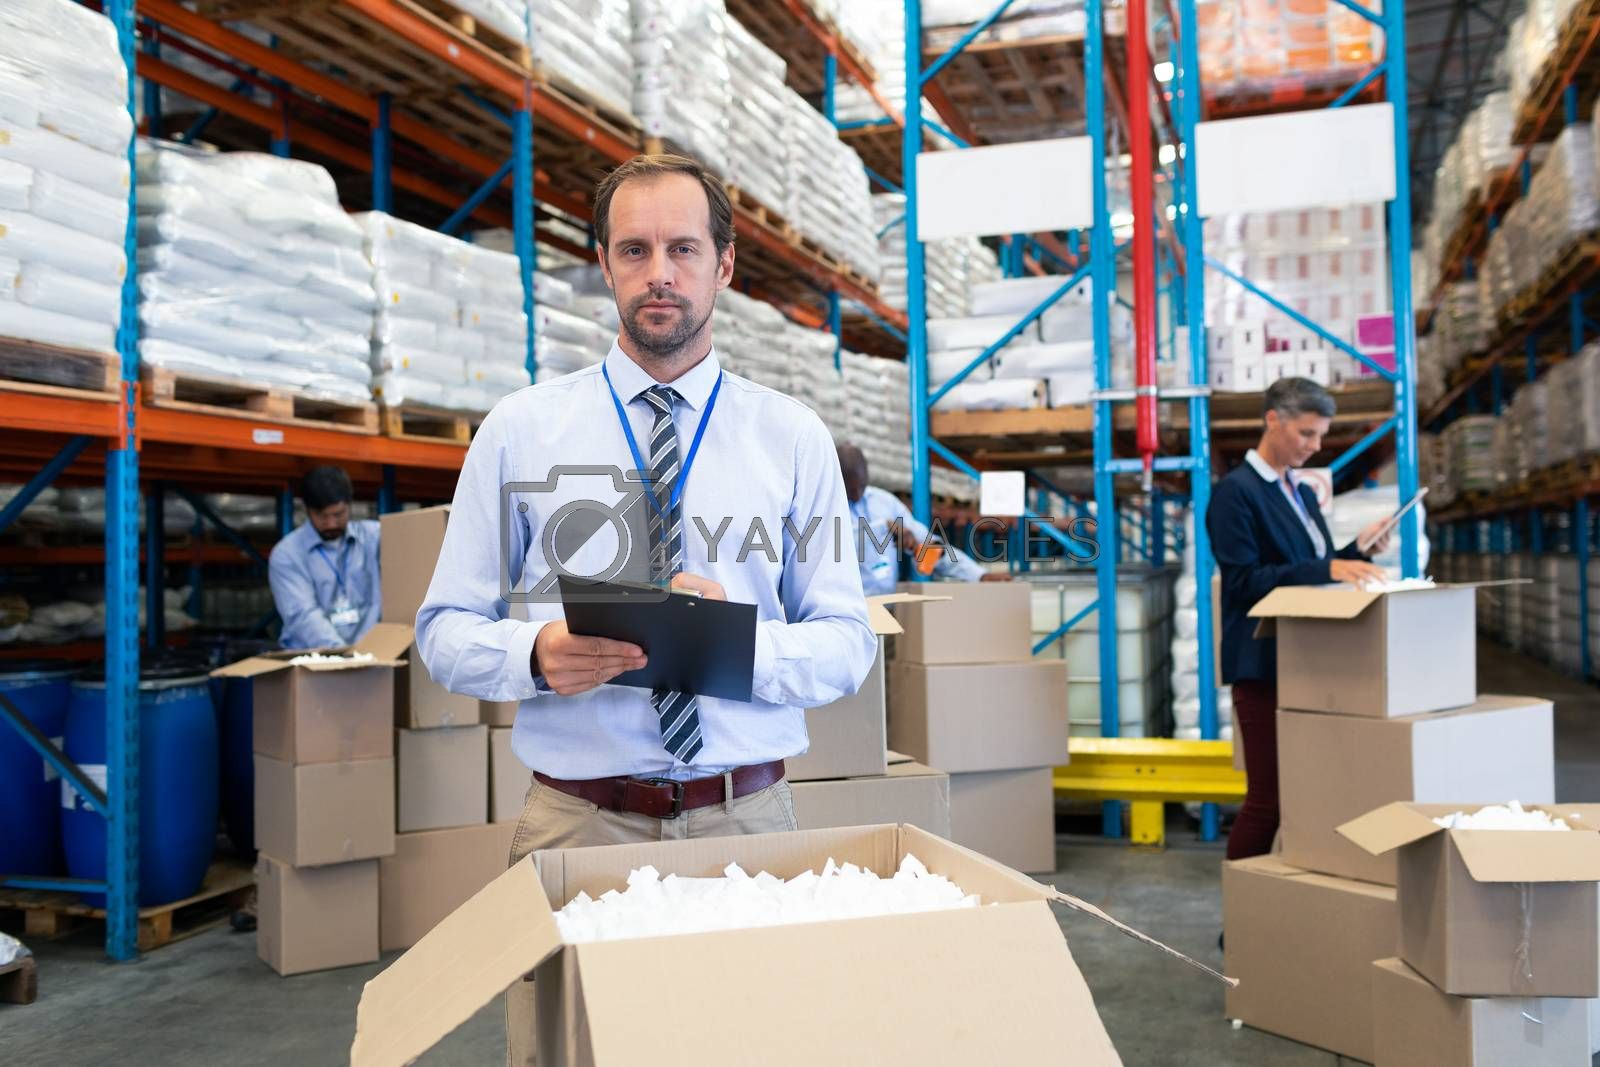 Front view of handsome Caucasian male supervisor checking stocks and looking at camera in warehouse. Diverse warehouse workers unpacking cardboard boxes. This is a freight transportation and distribution warehouse. Industrial and industrial workers concept